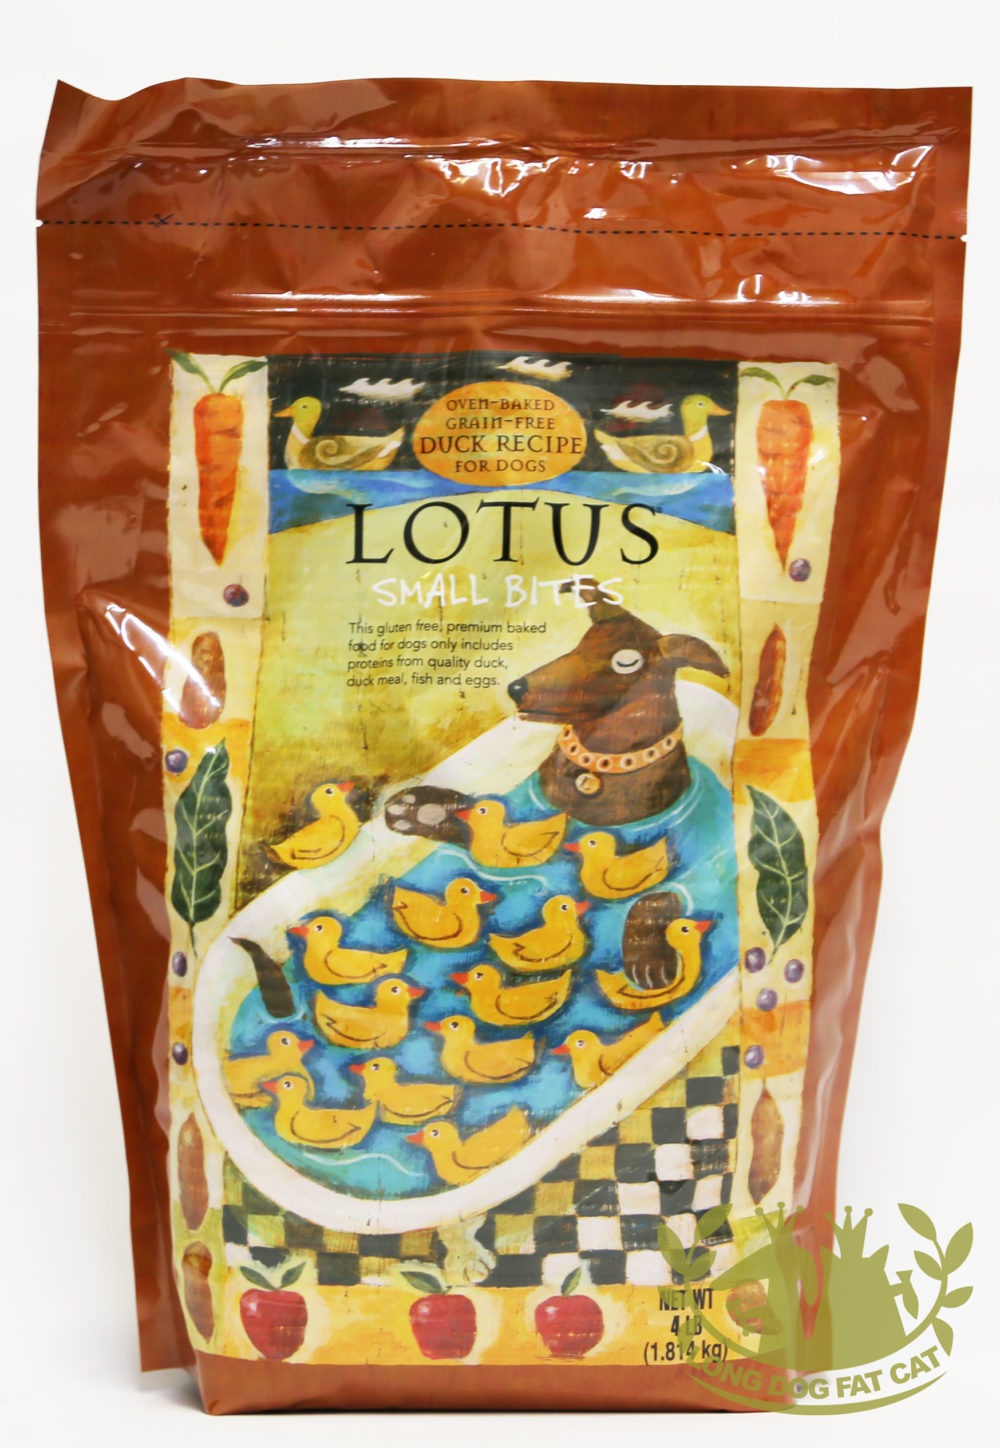 Lotus Wholesome Small Bite Grain-Free Duck Recipe